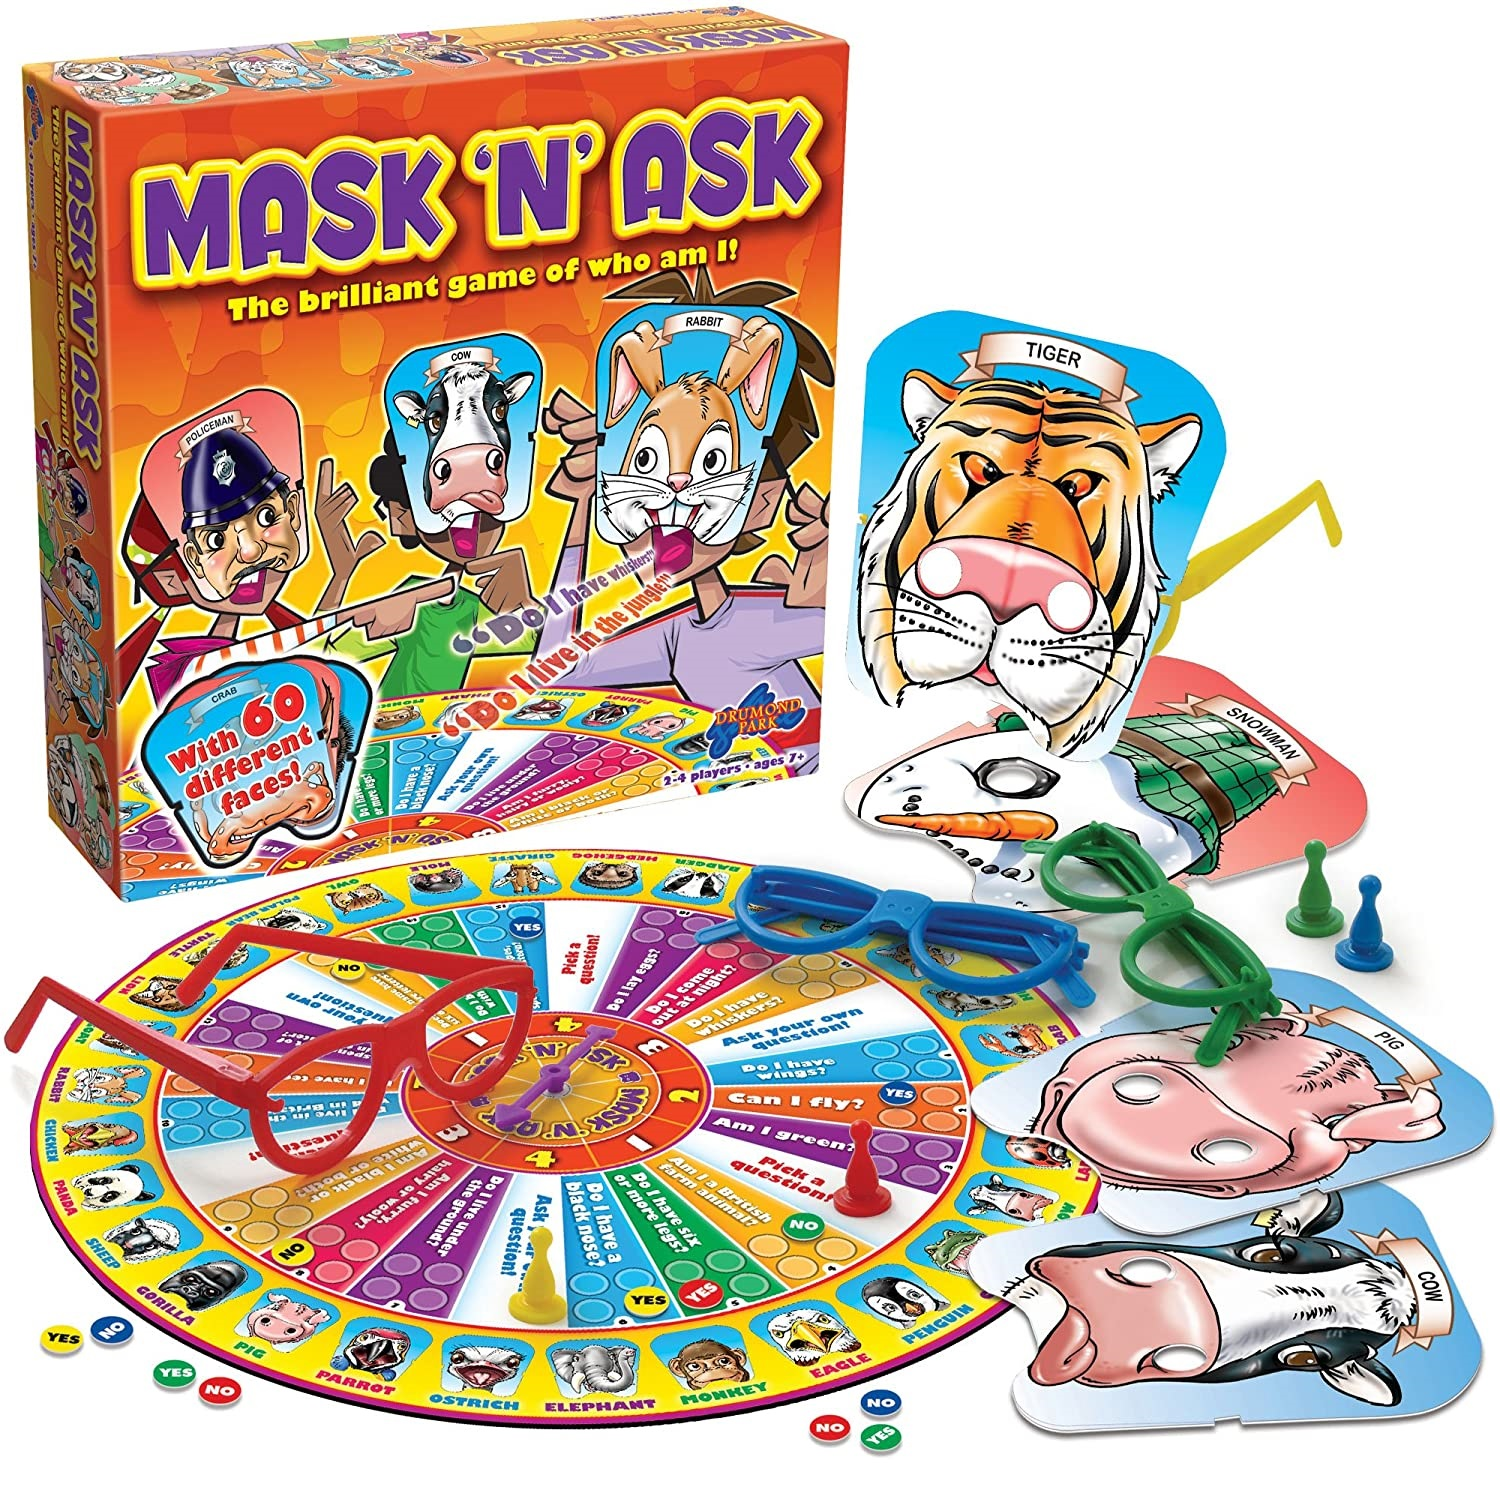 Mask n ask board game family parent child interaction mask man guess who I am